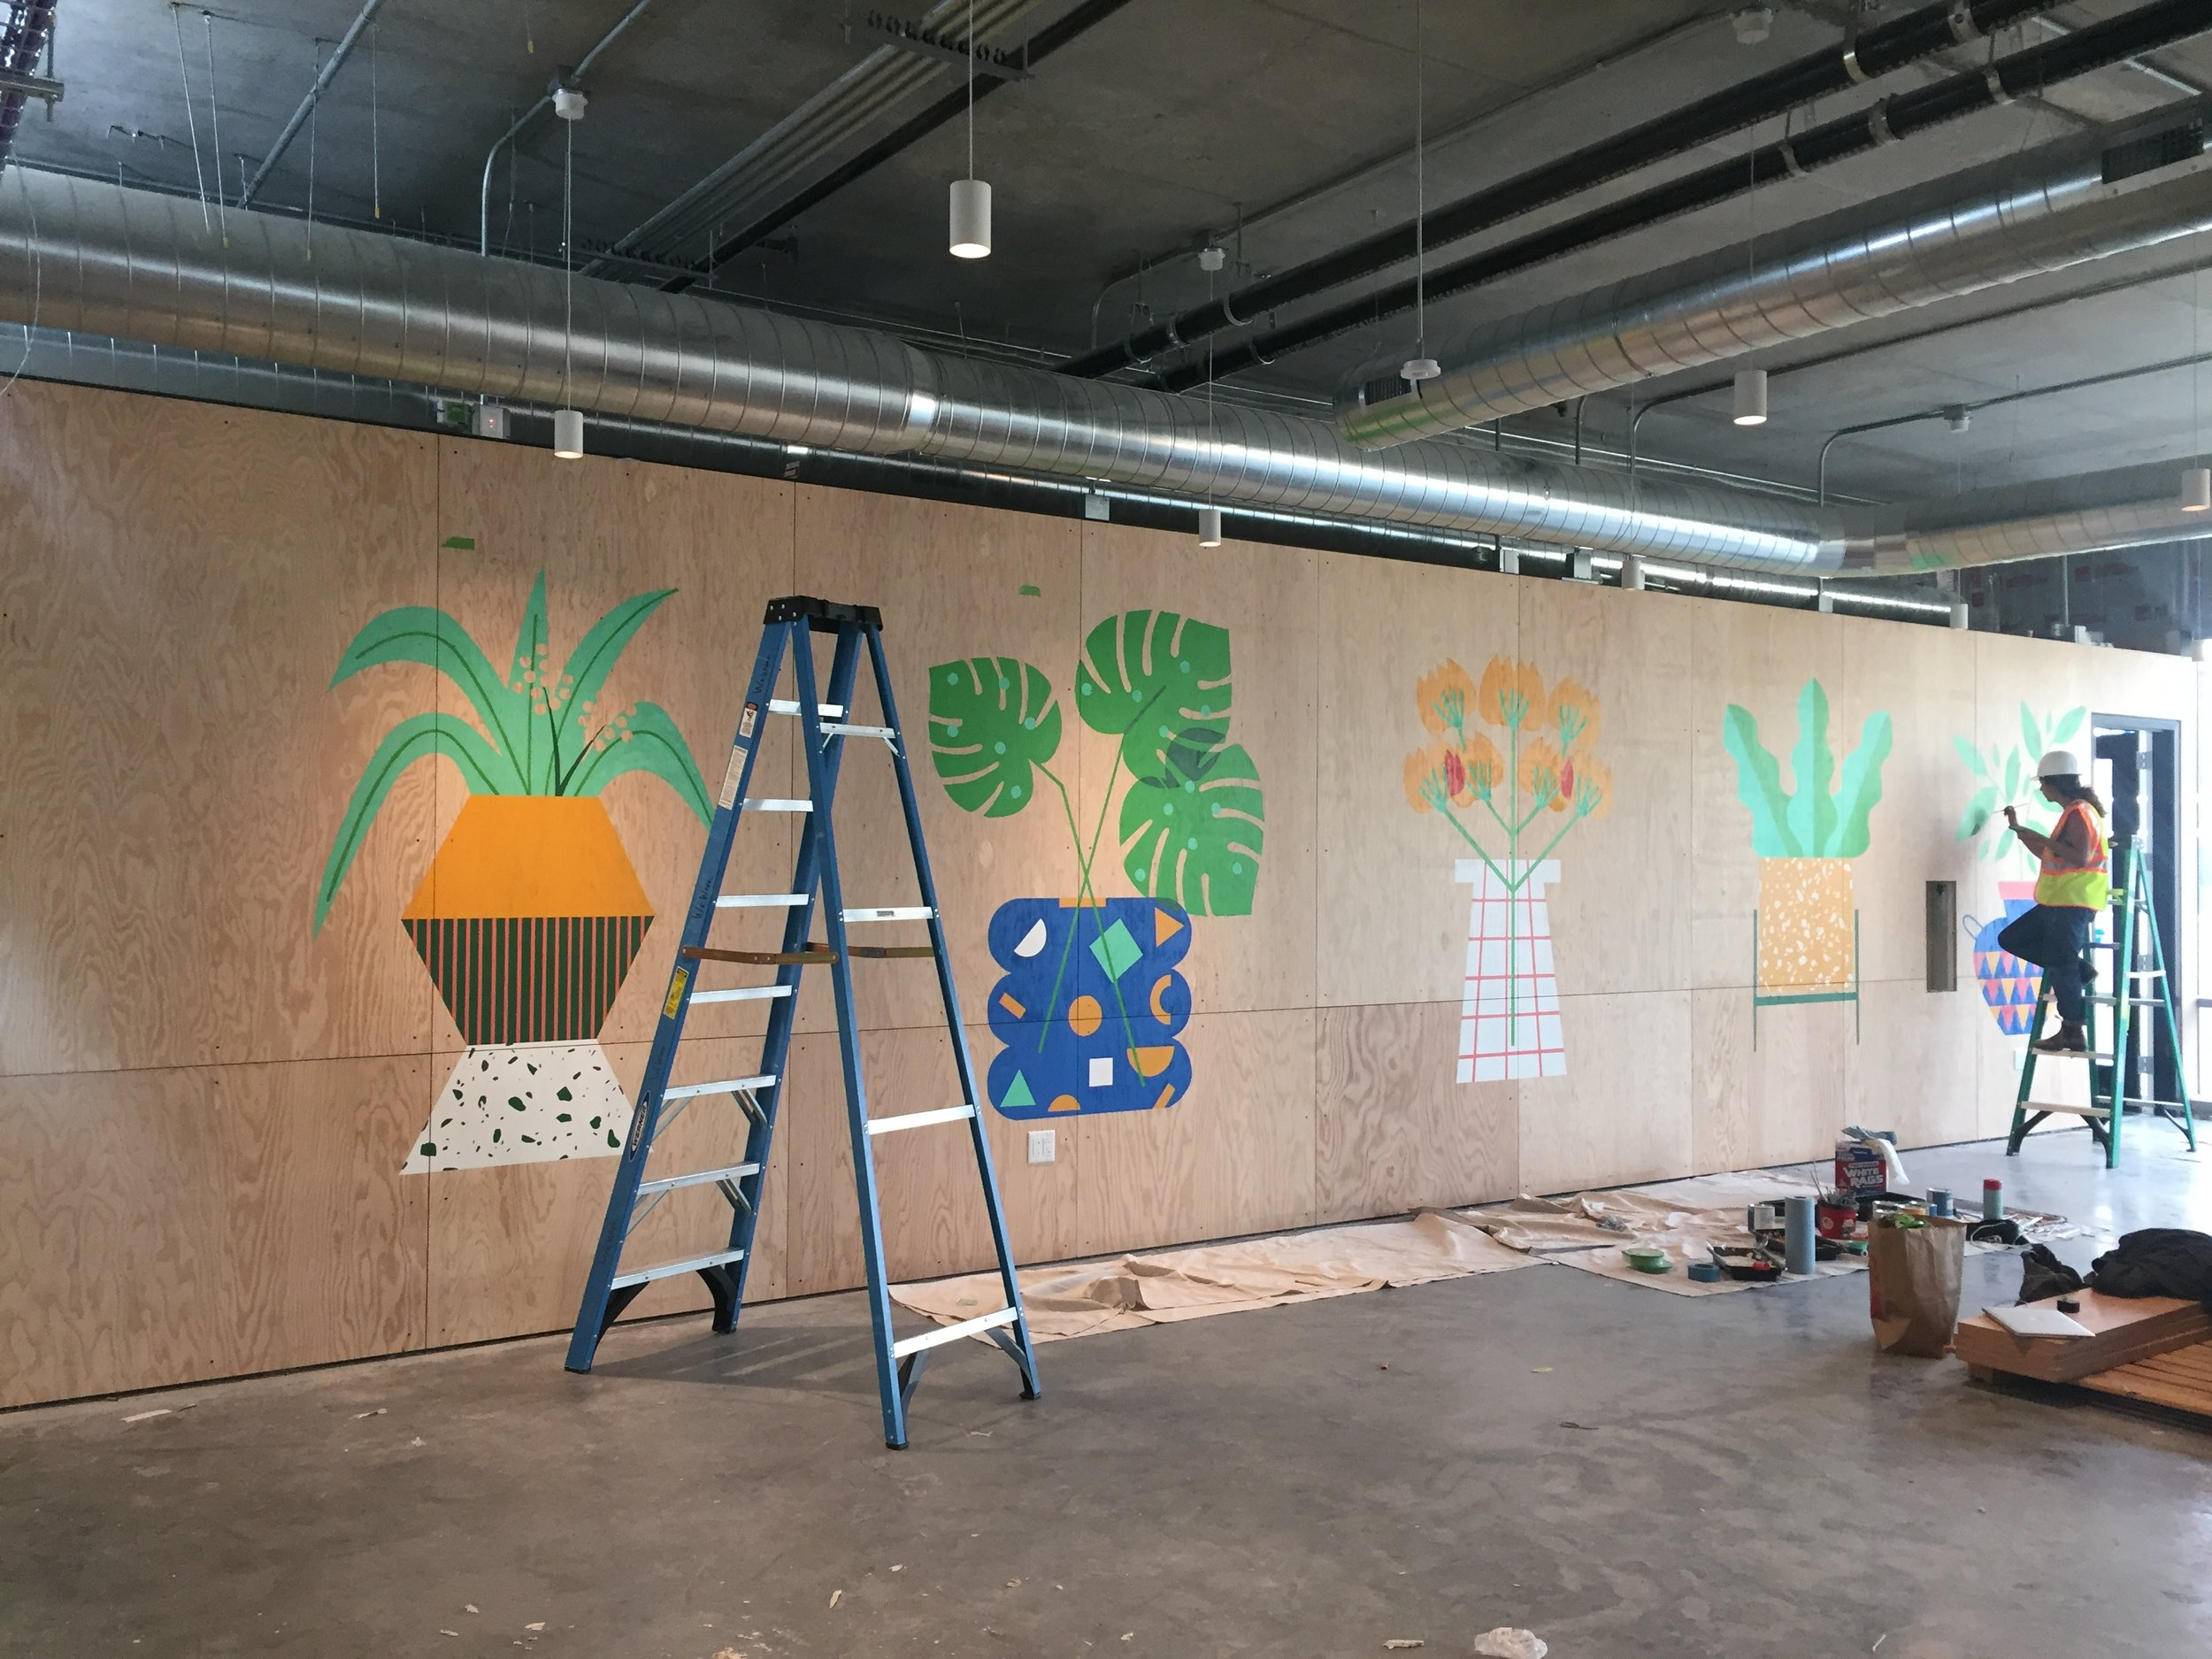 Office-commercial-mural-san-francisco-wework-facebook-wall-and-wall-mural-company_003.jpeg